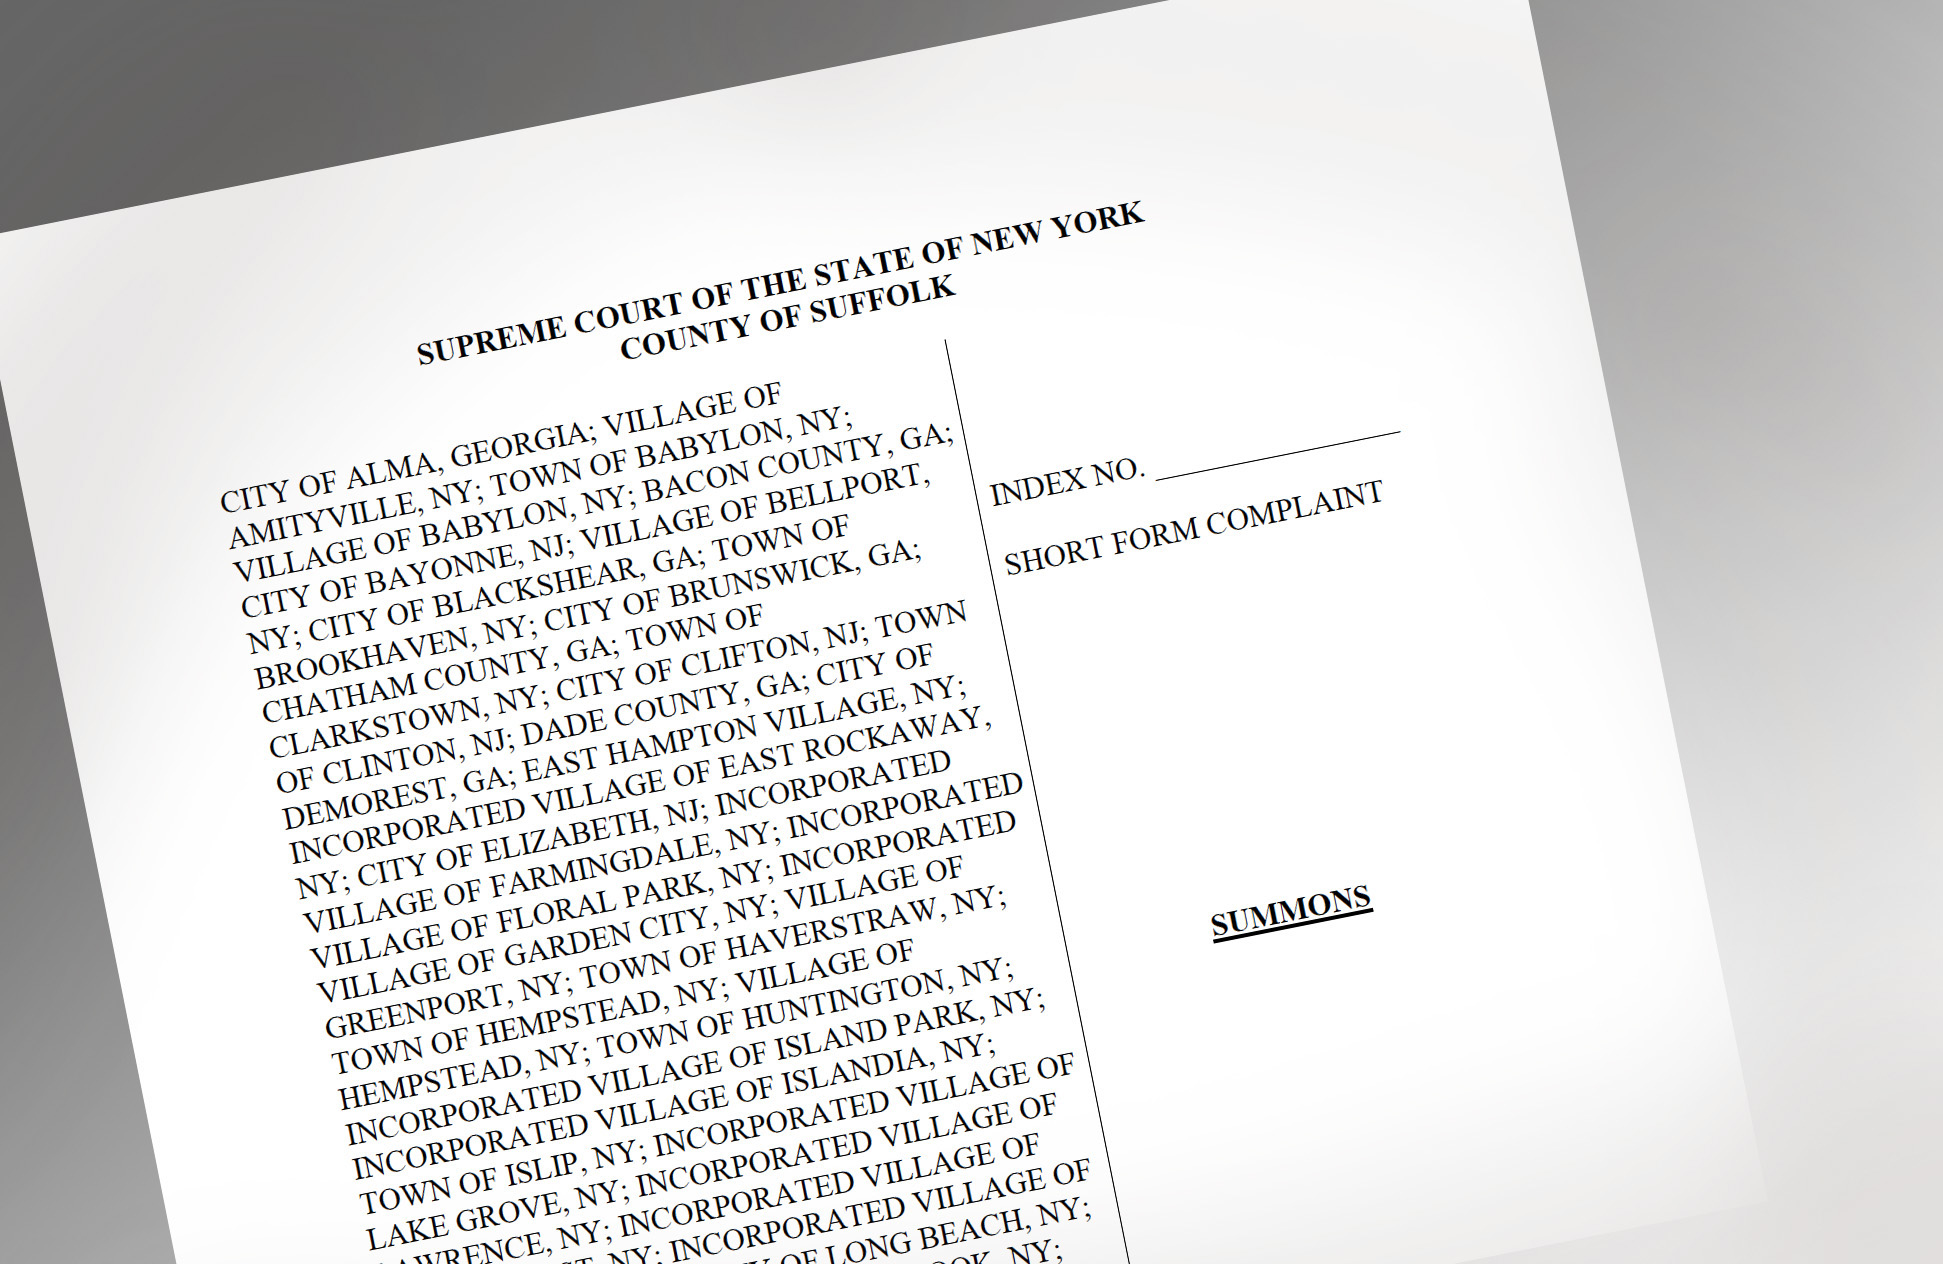 image of printed page of lawsuit